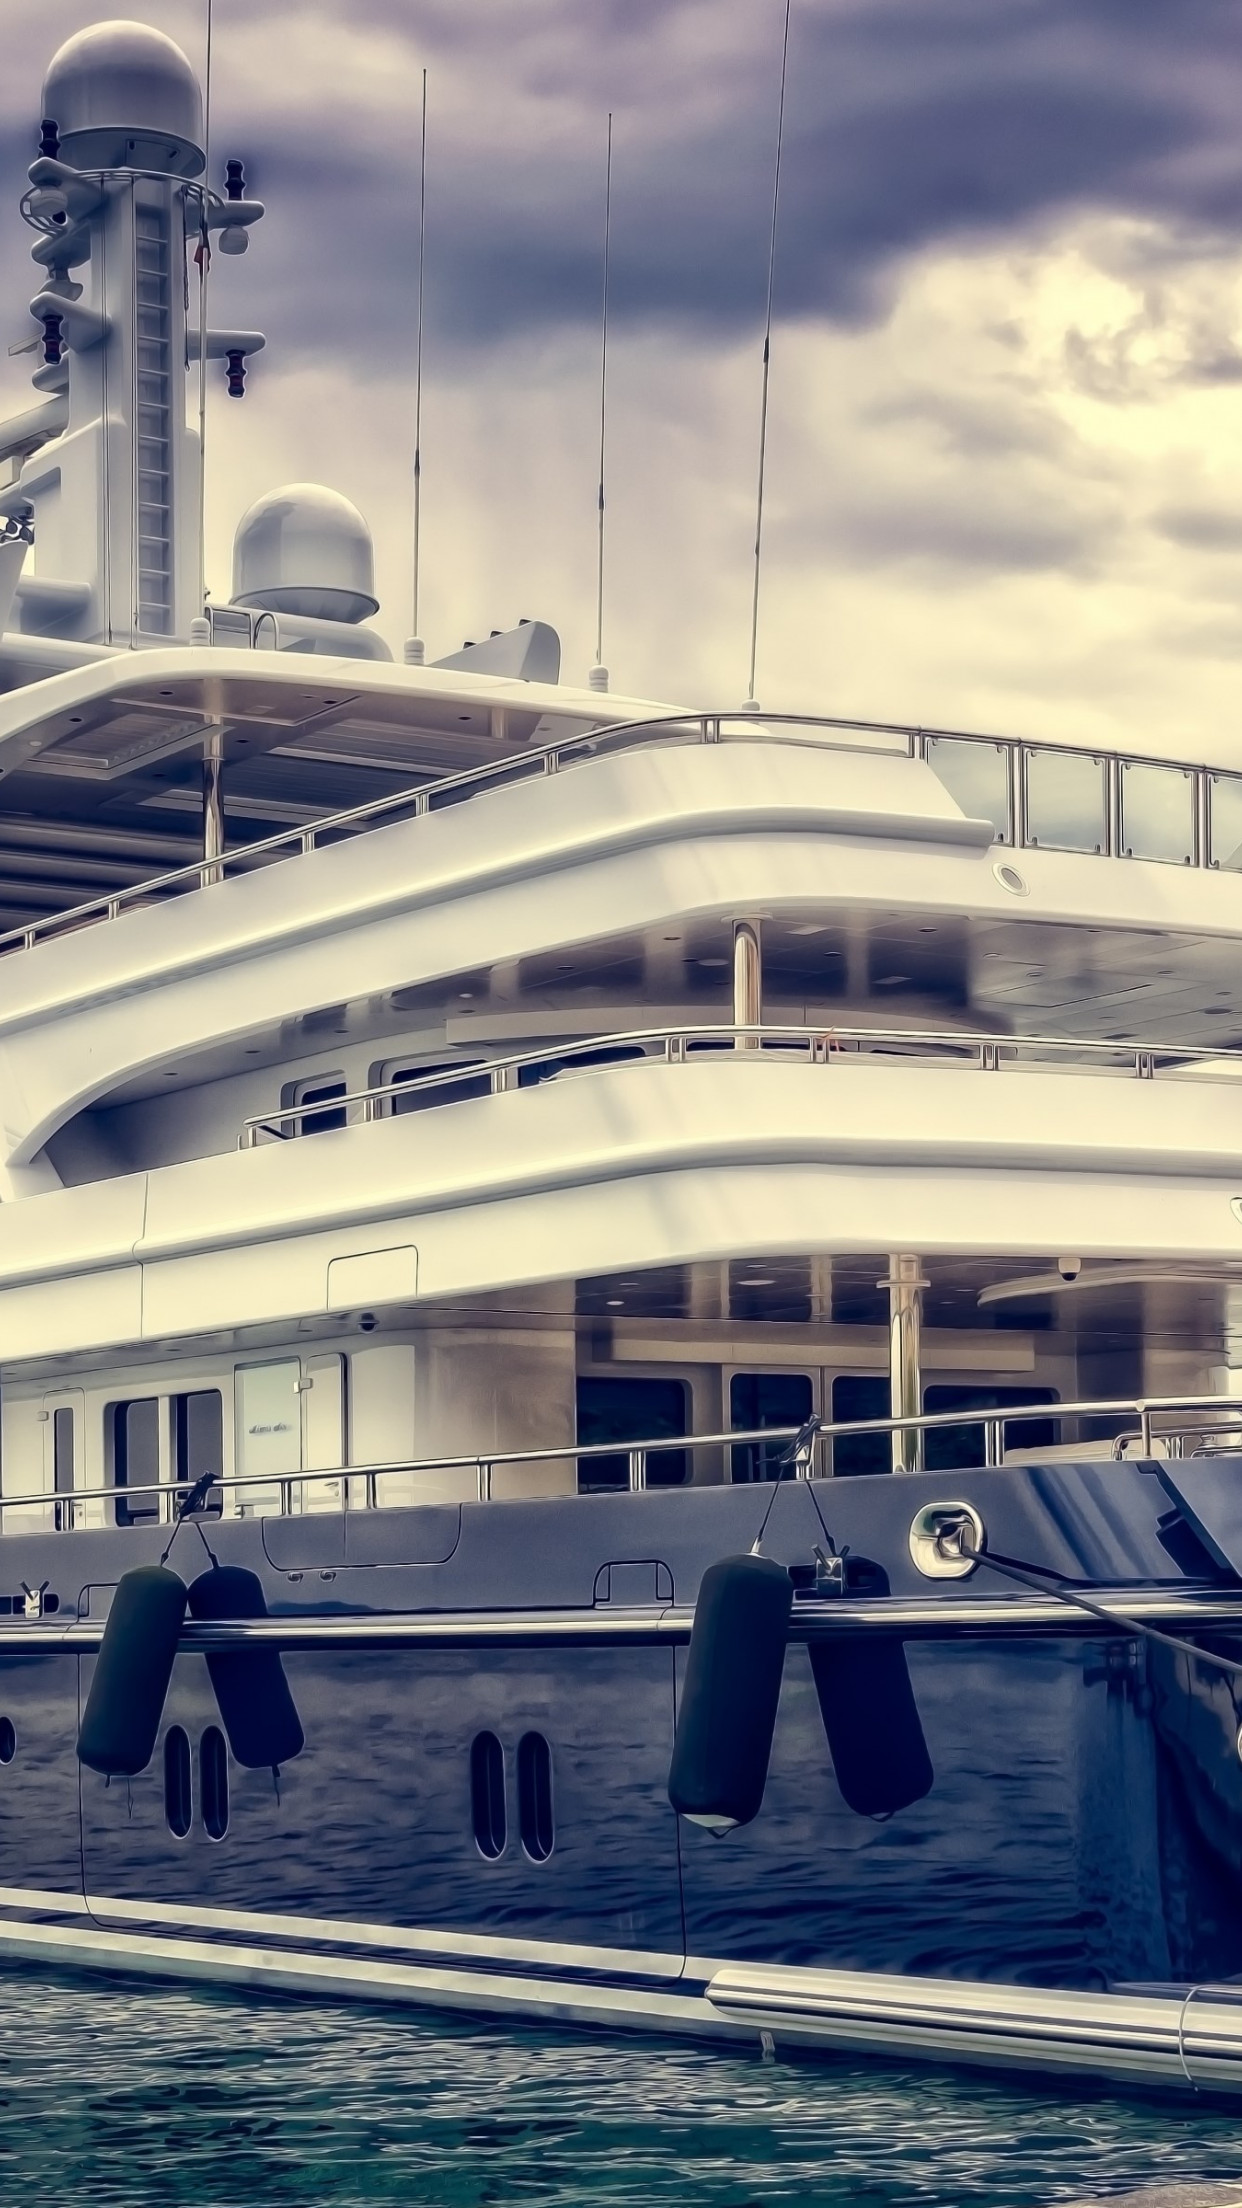 Super Yacht In Harbour Wallpaper Yacht Wallpaper 4k Iphone 1242x2208 Download Hd Wallpaper Wallpapertip